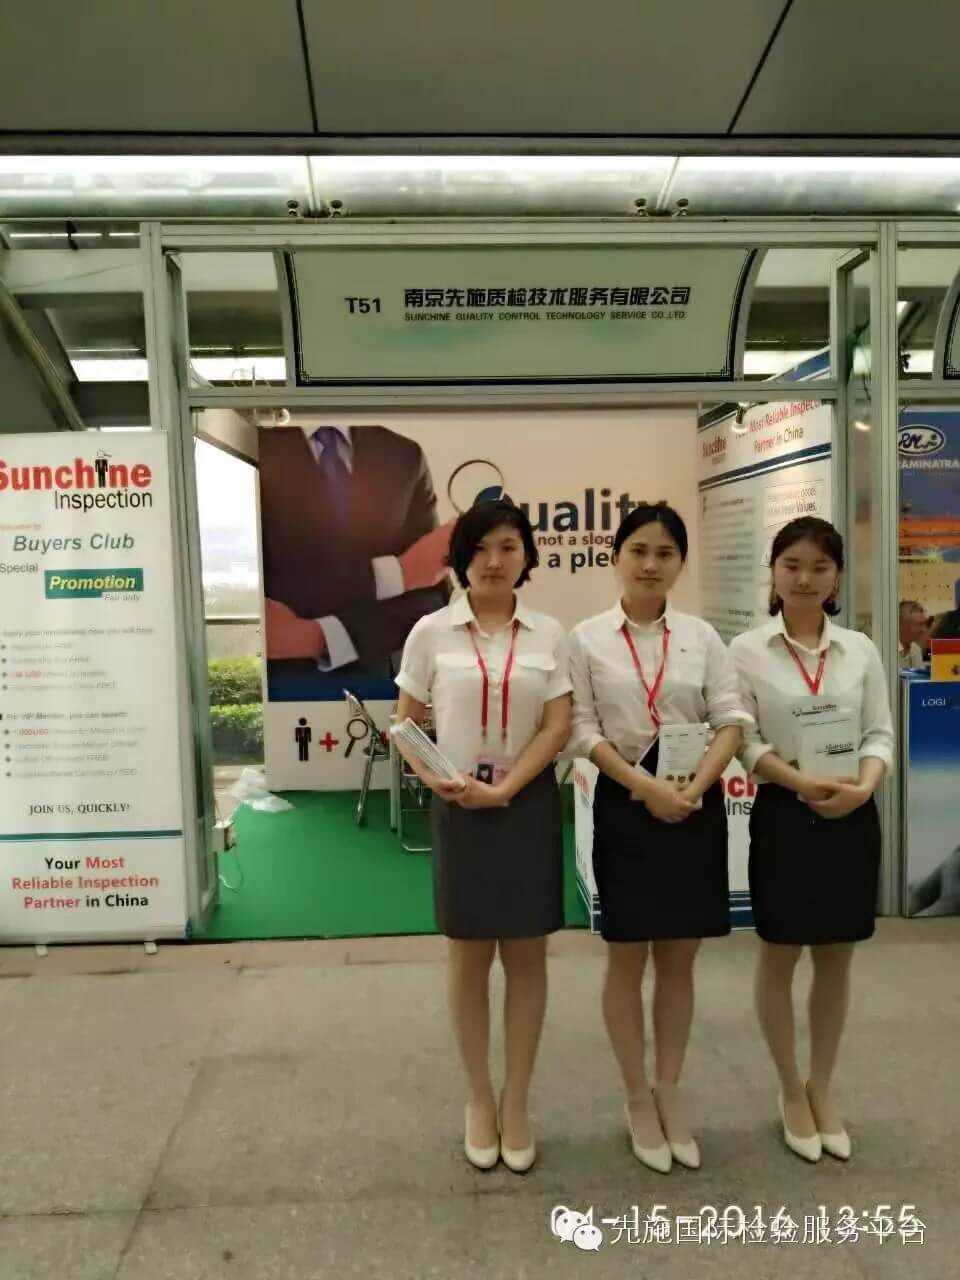 Sunchine in the 119th Canton Fair in 2016 (2)